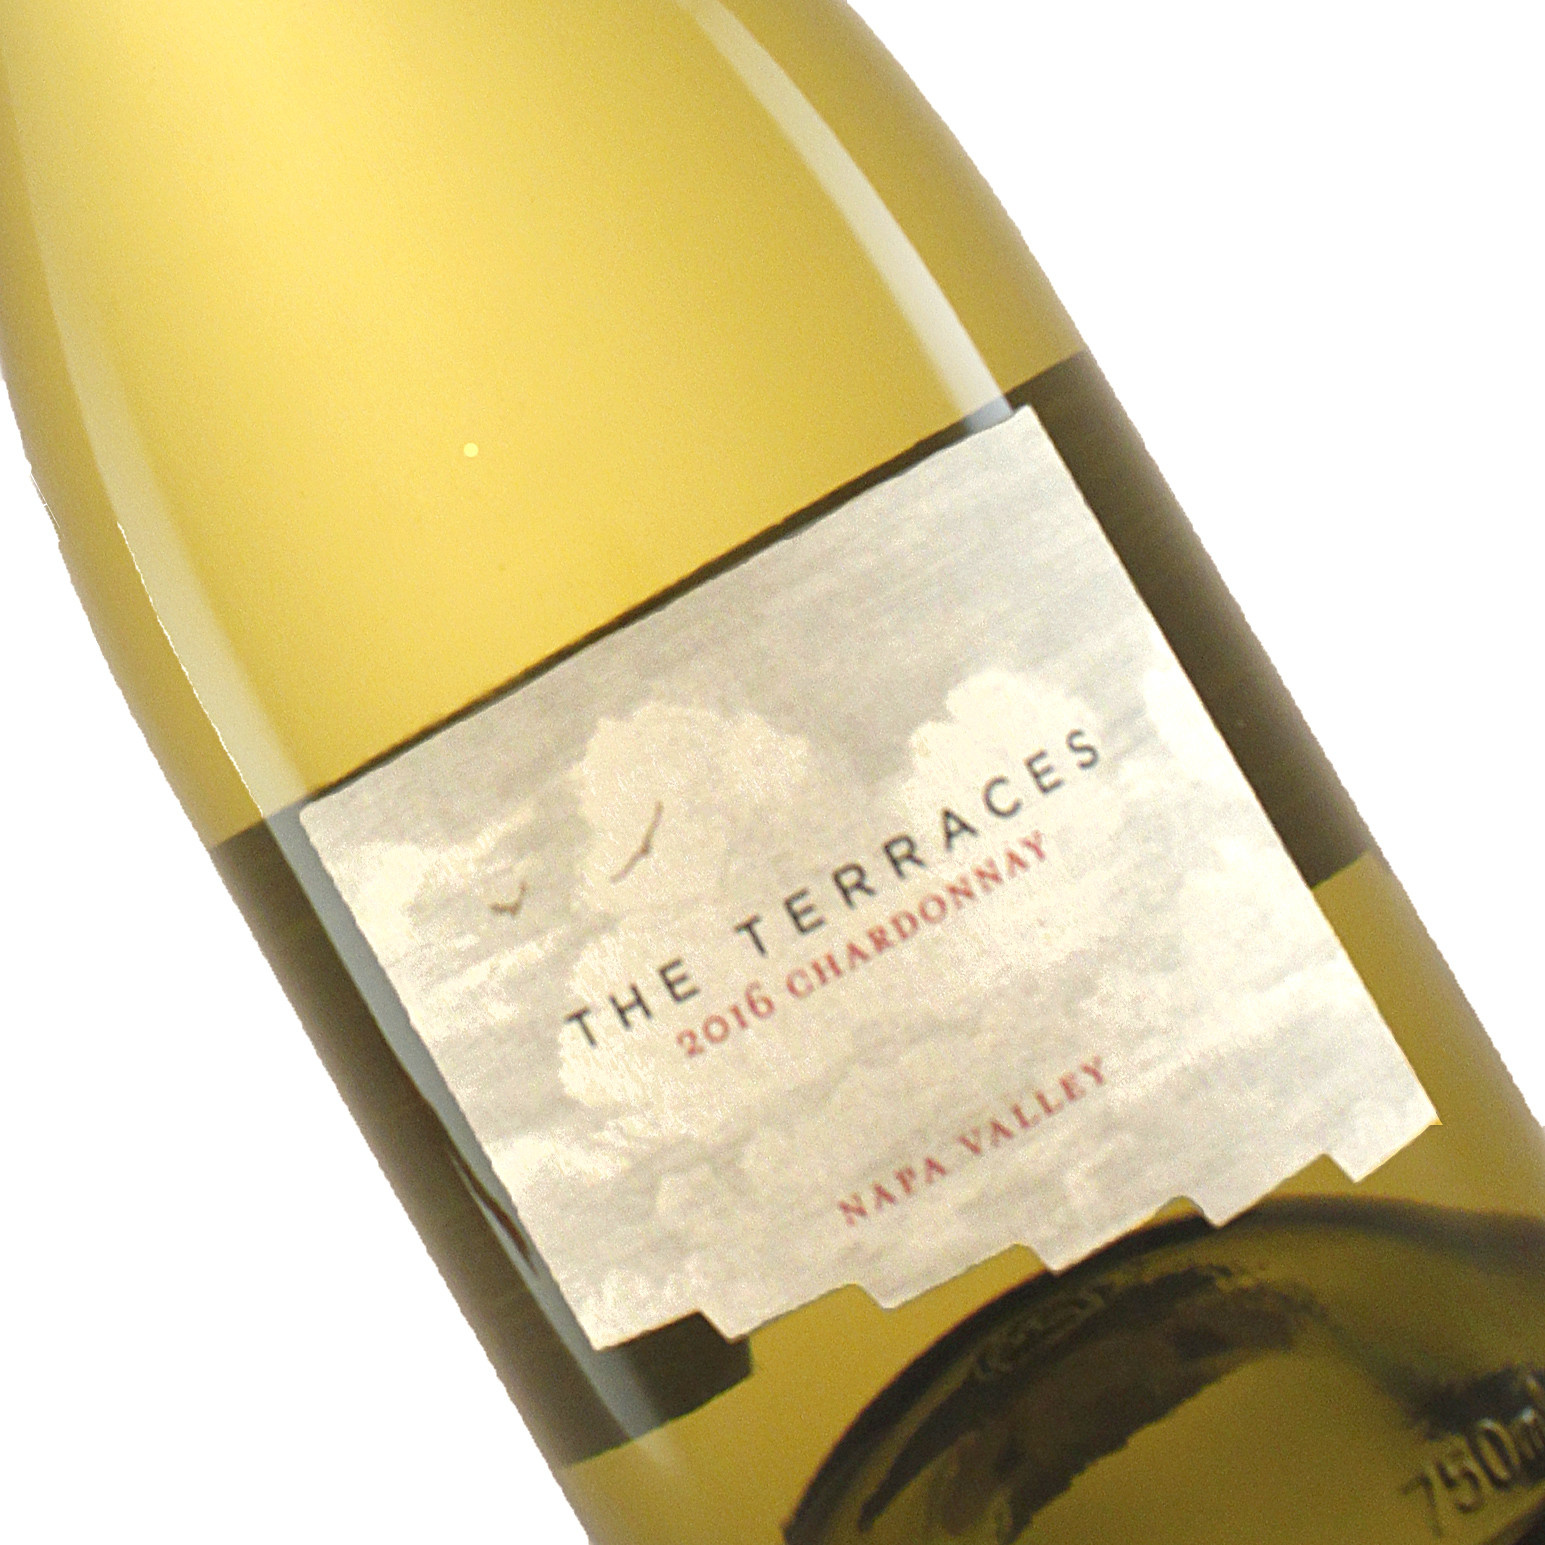 The Terraces 2016 Chardonnay, Napa Valley